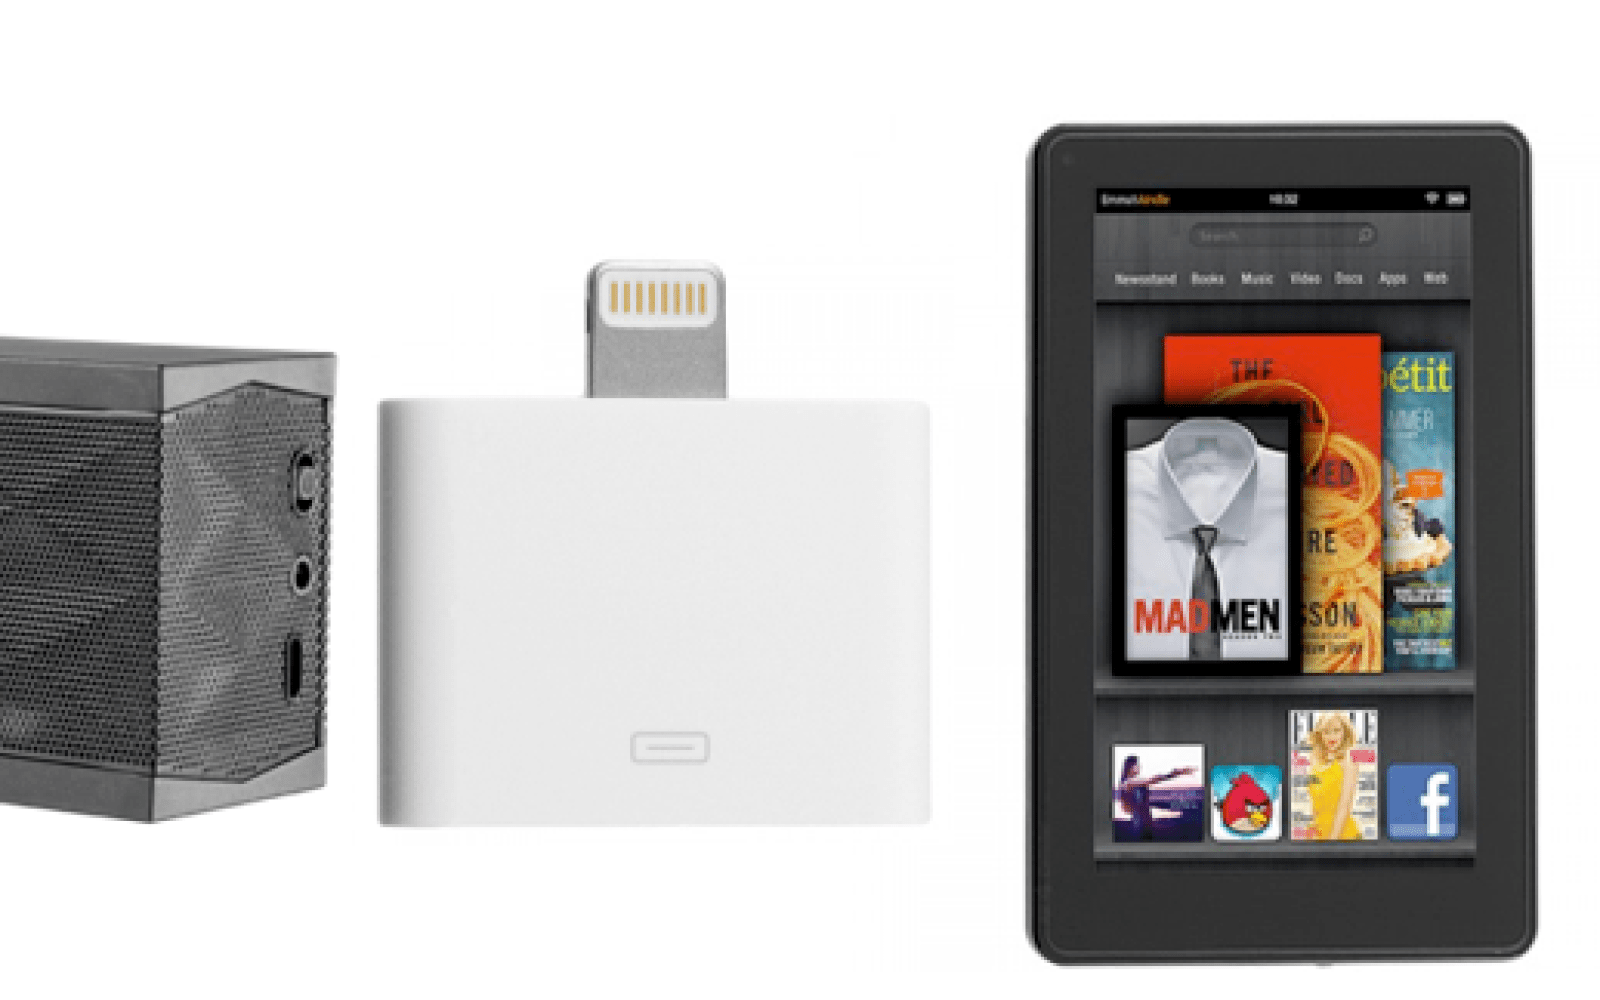 20% All4Cellular sitewide discount: $72 Jambox, $16 Apple Lightning adapter & Earpods, $16 iPhone 5 OtterBox Defender